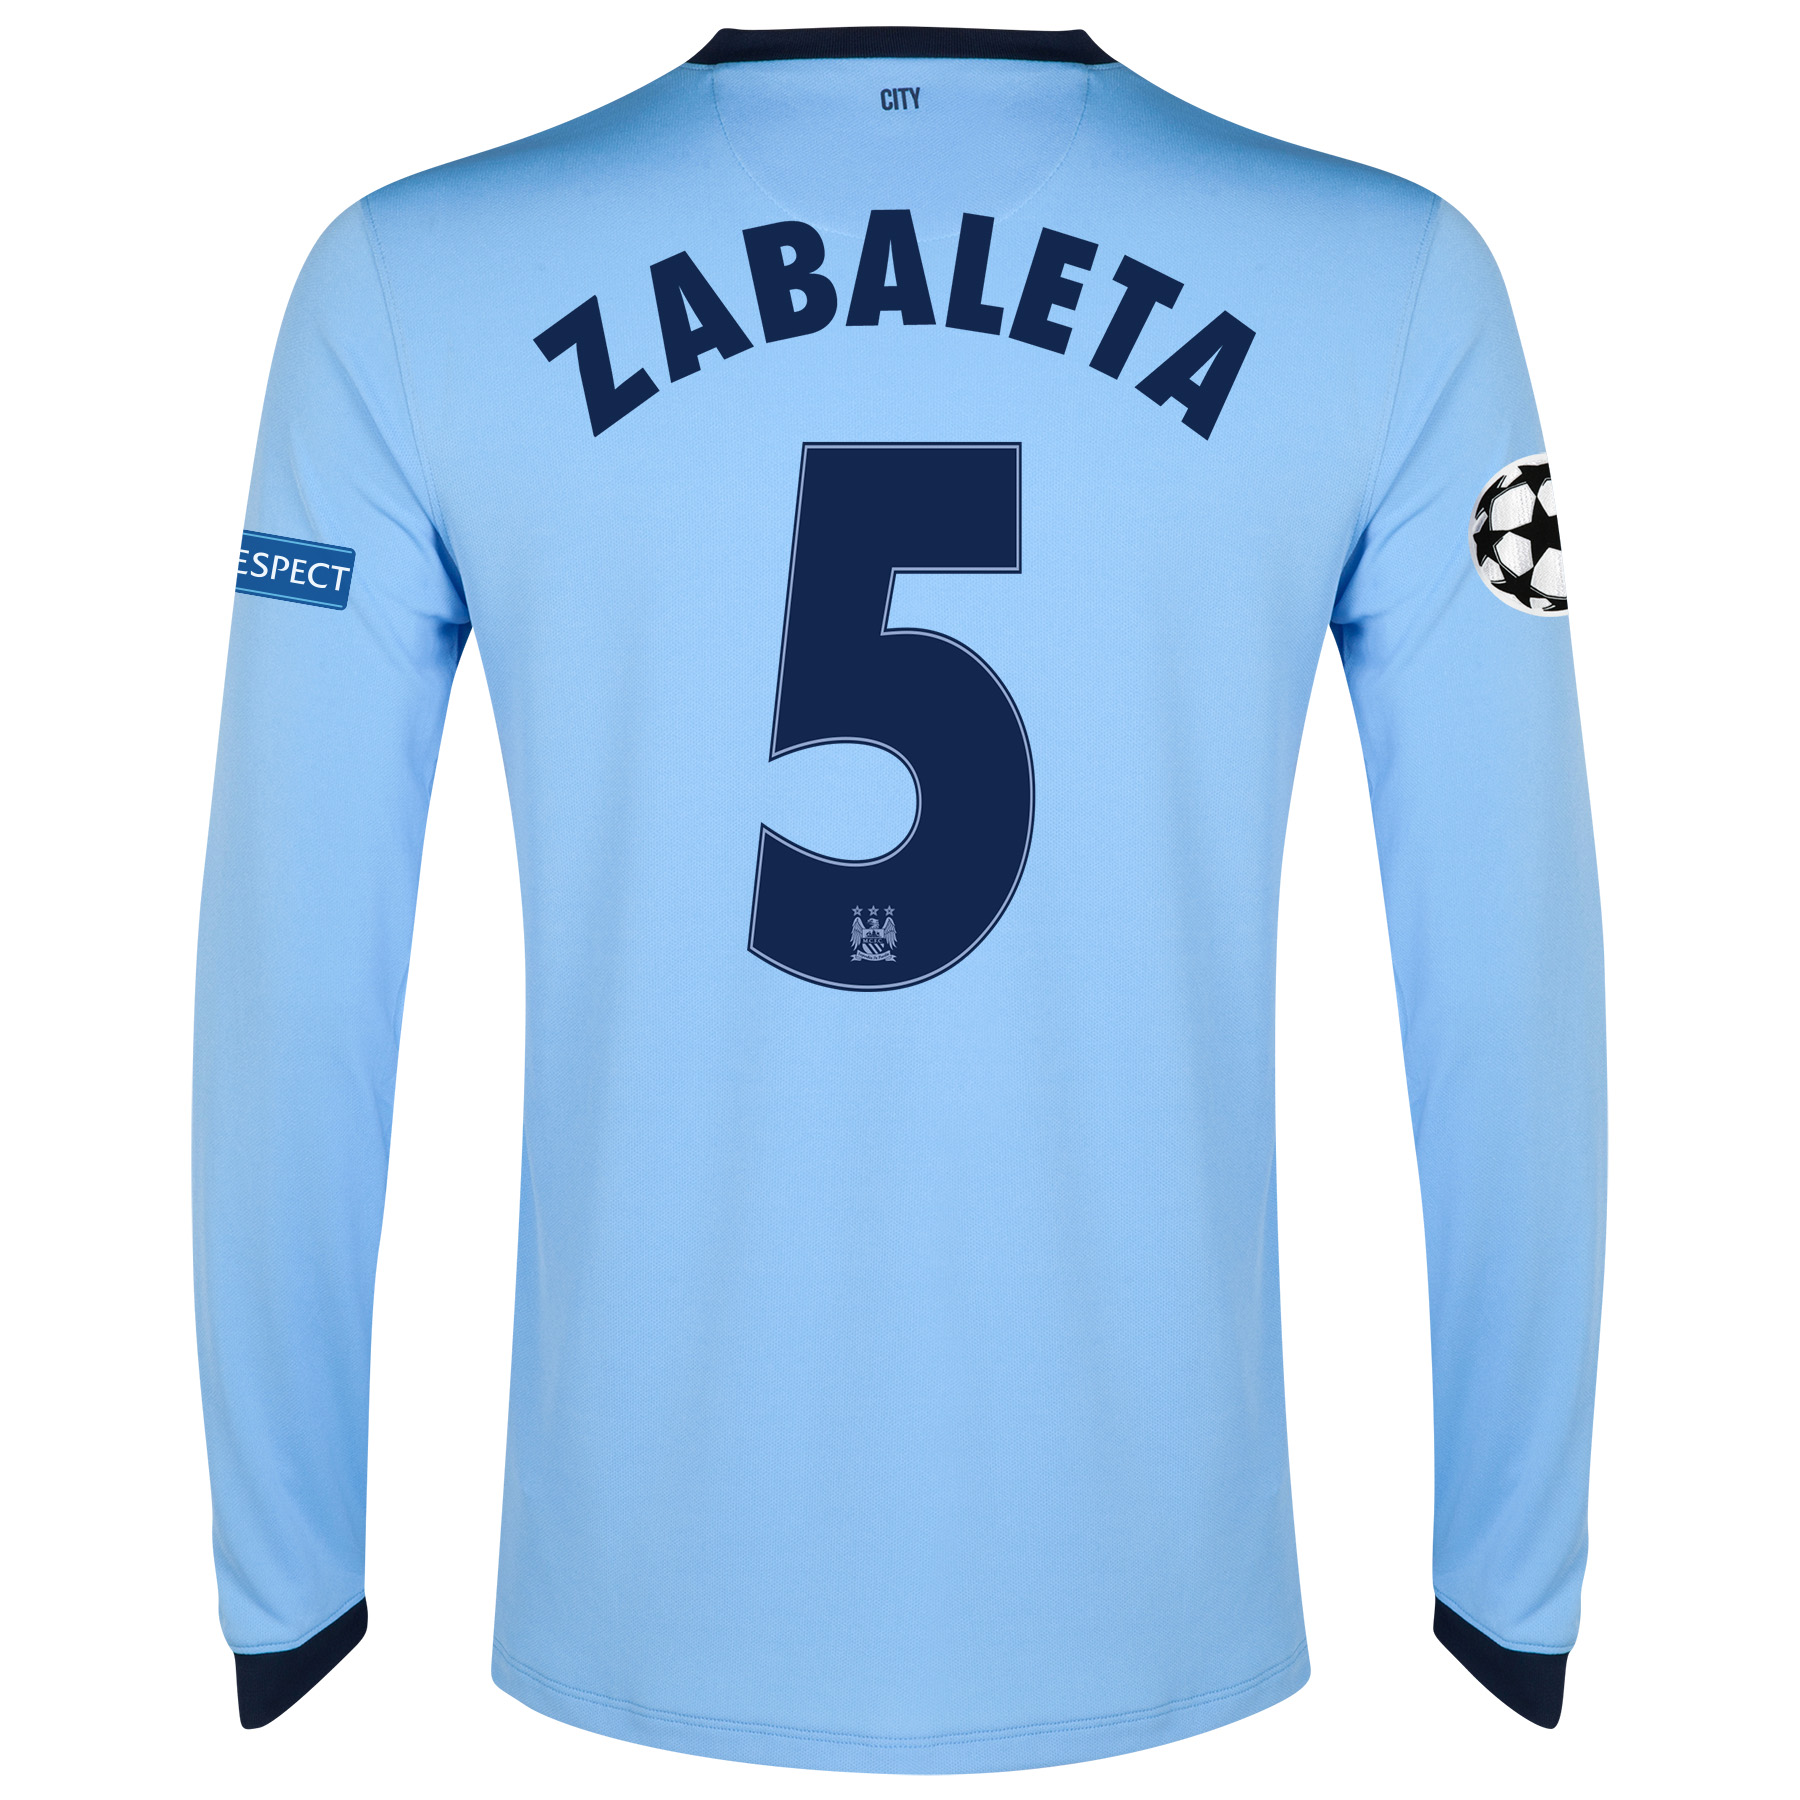 Manchester City UEFA Champions League Home Shirt 2014/15 - Long Sleeve Sky Blue with Zabaleta 5 printing